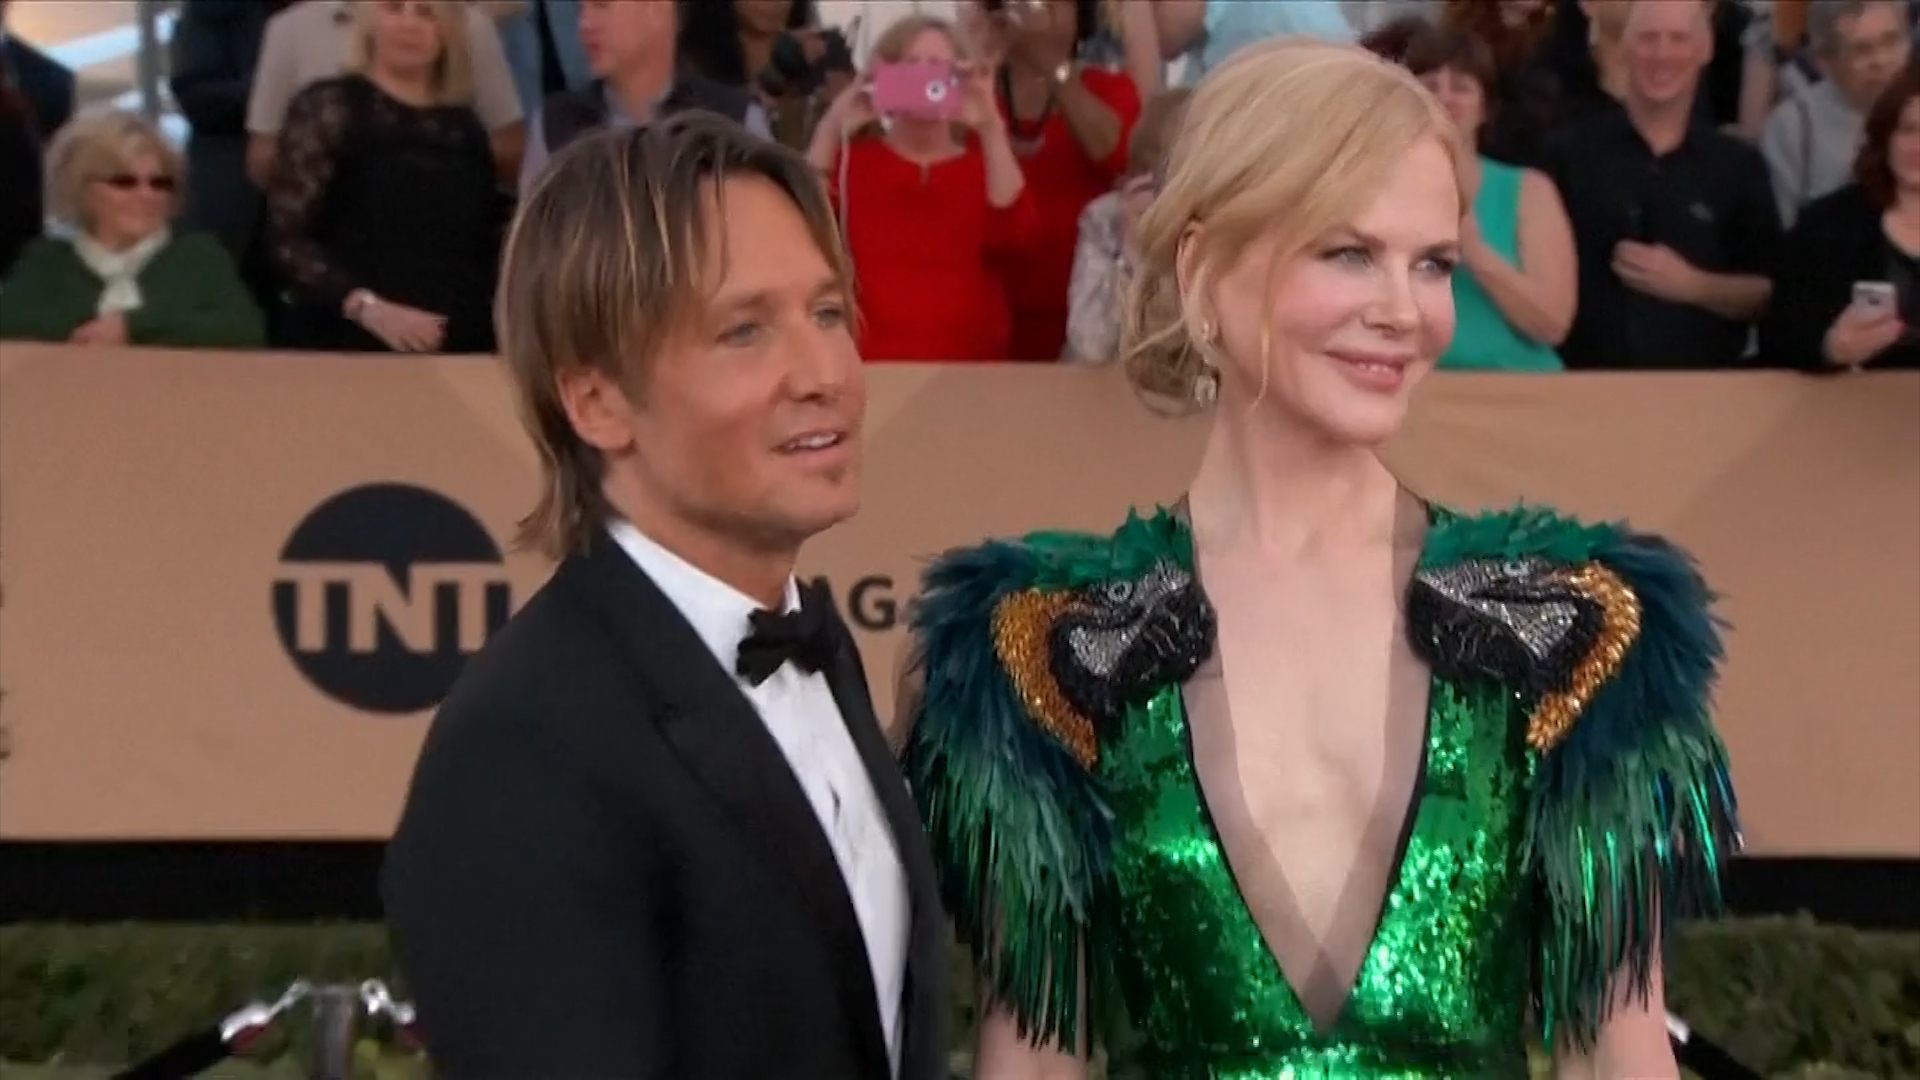 Nicole Kidman Admits It's 'Embarrassing' Husband Keith Urban Called Her A 'Maniac In Bed'